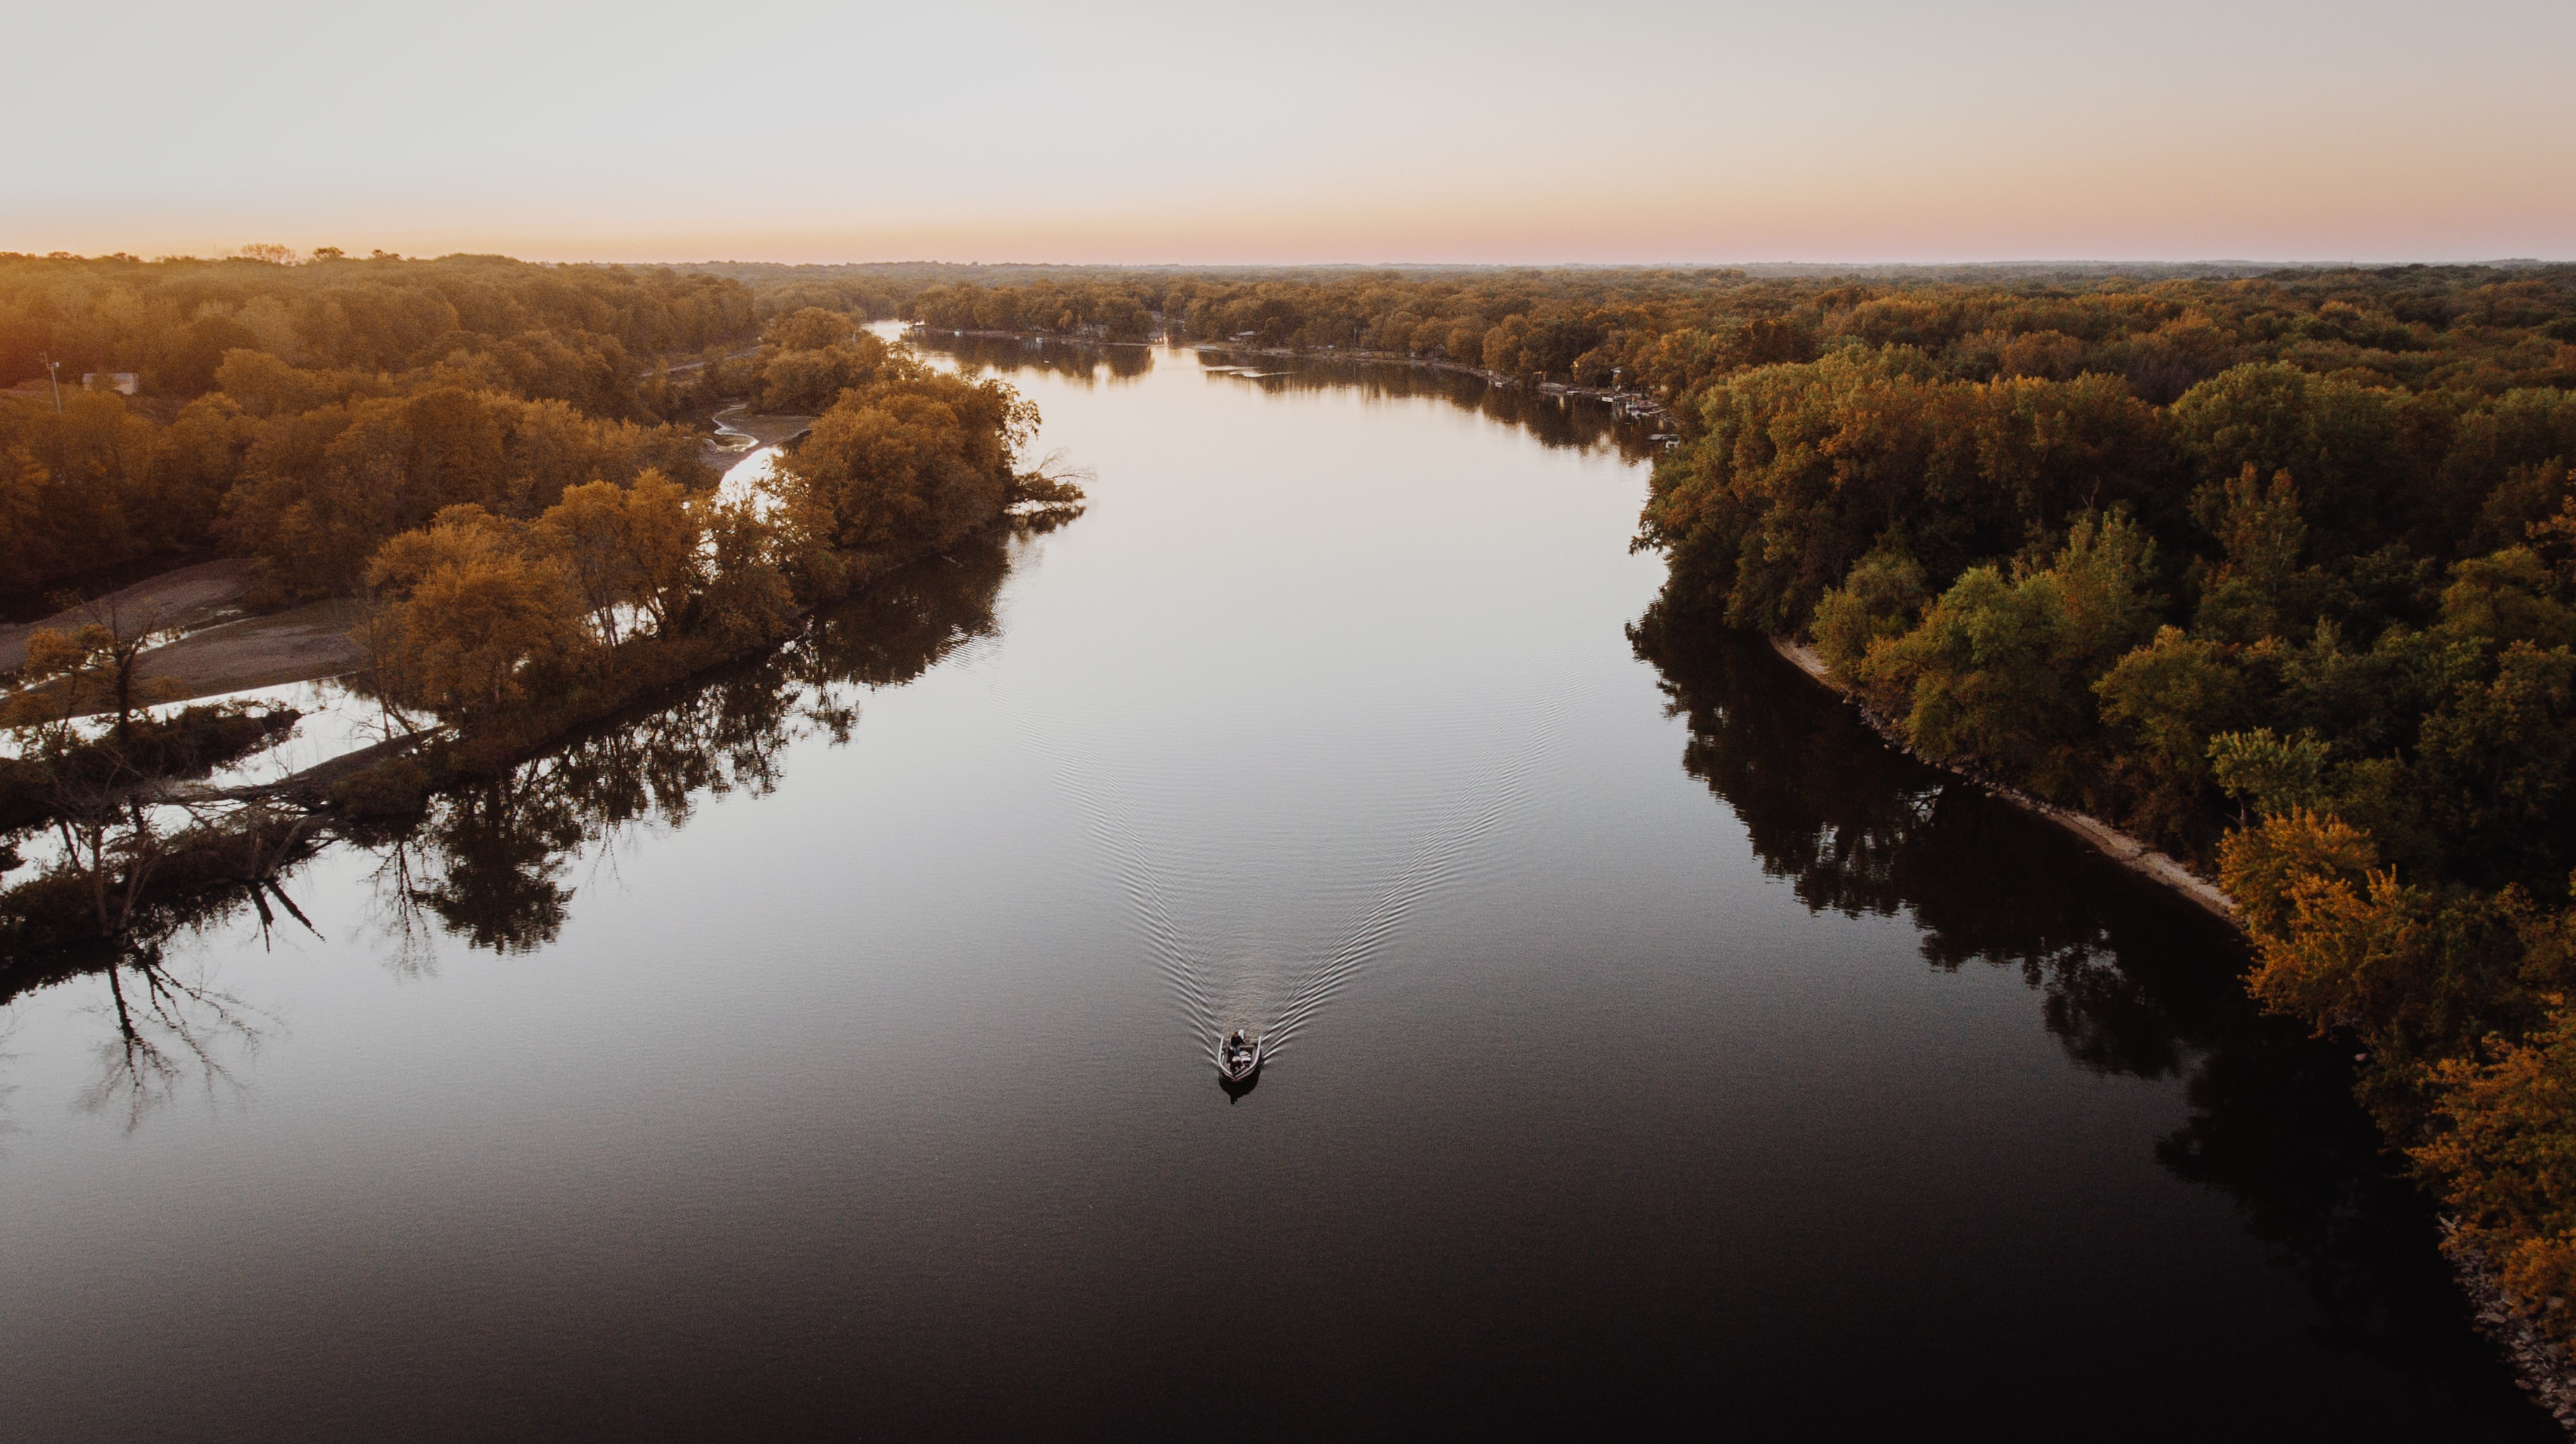 aerial photo of gray boat on flowing river near green trees